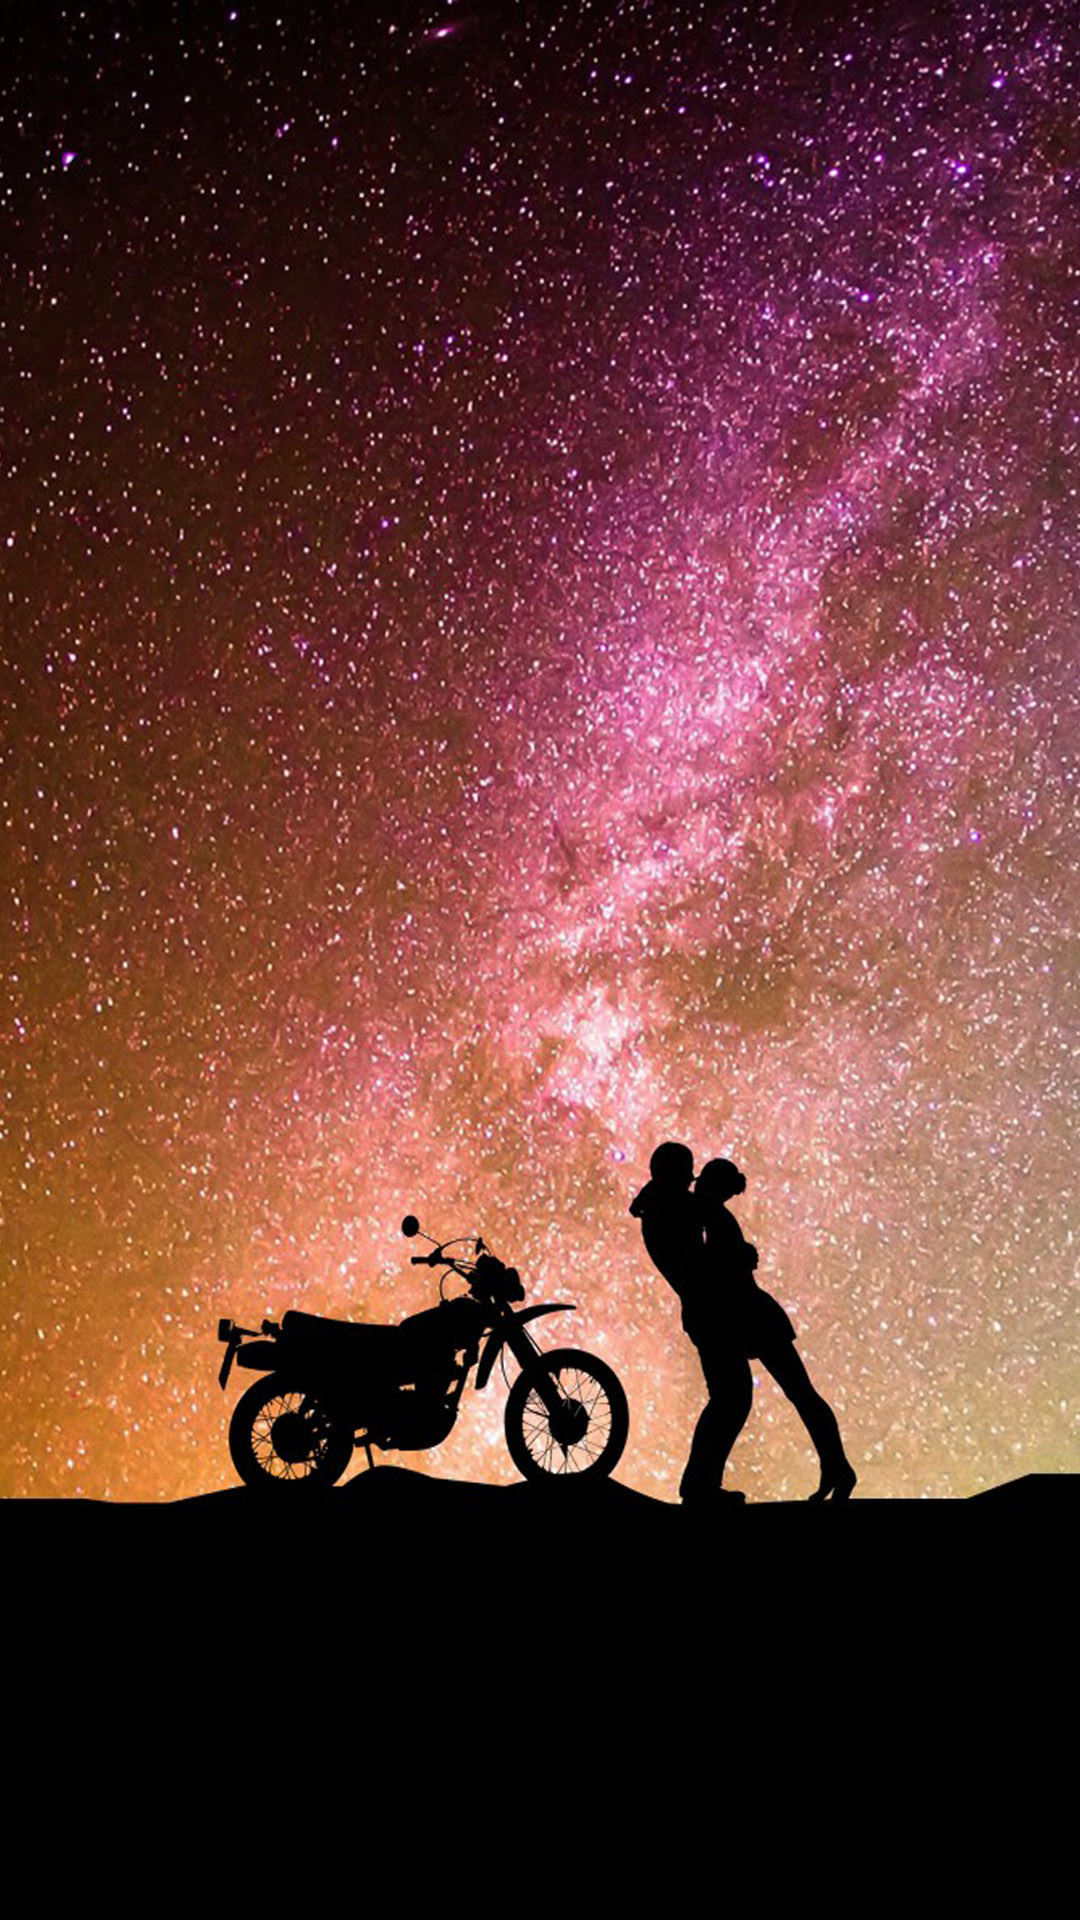 Couple Romantic Kiss Motorcycle Hd Mobile Wallpaper - Love Starry Night Couple - HD Wallpaper